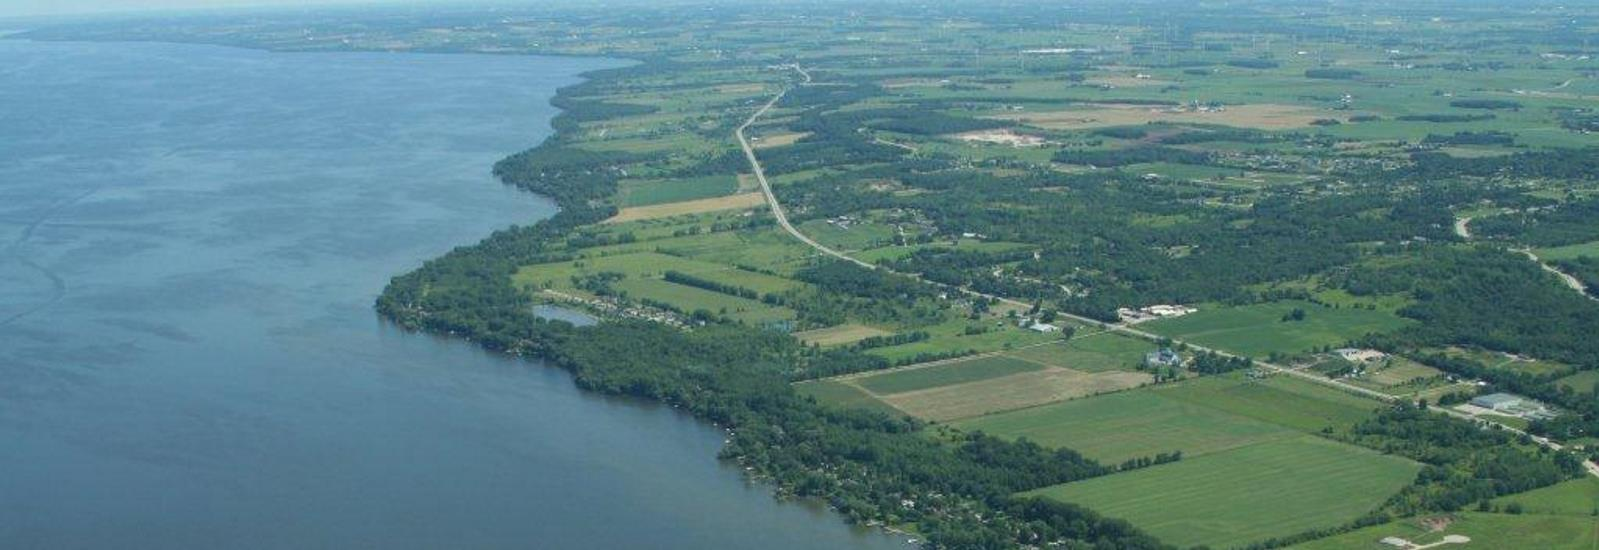 Aerial of Fond du Lac on Lake Winnebago